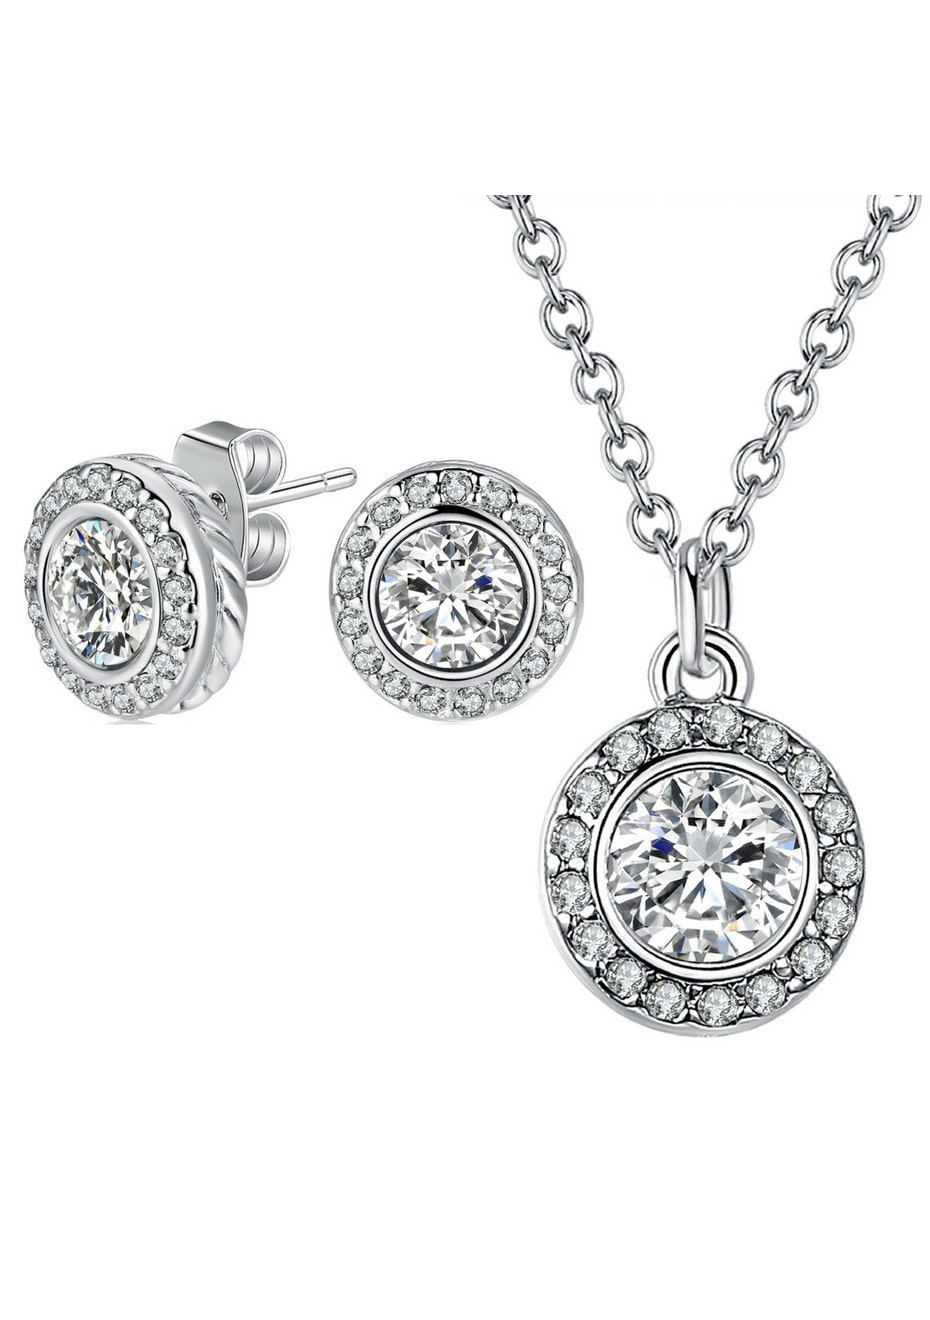 2pc Classic Earring & Pendant Necklace Set Embellished with Crystals from Swarovski -WG